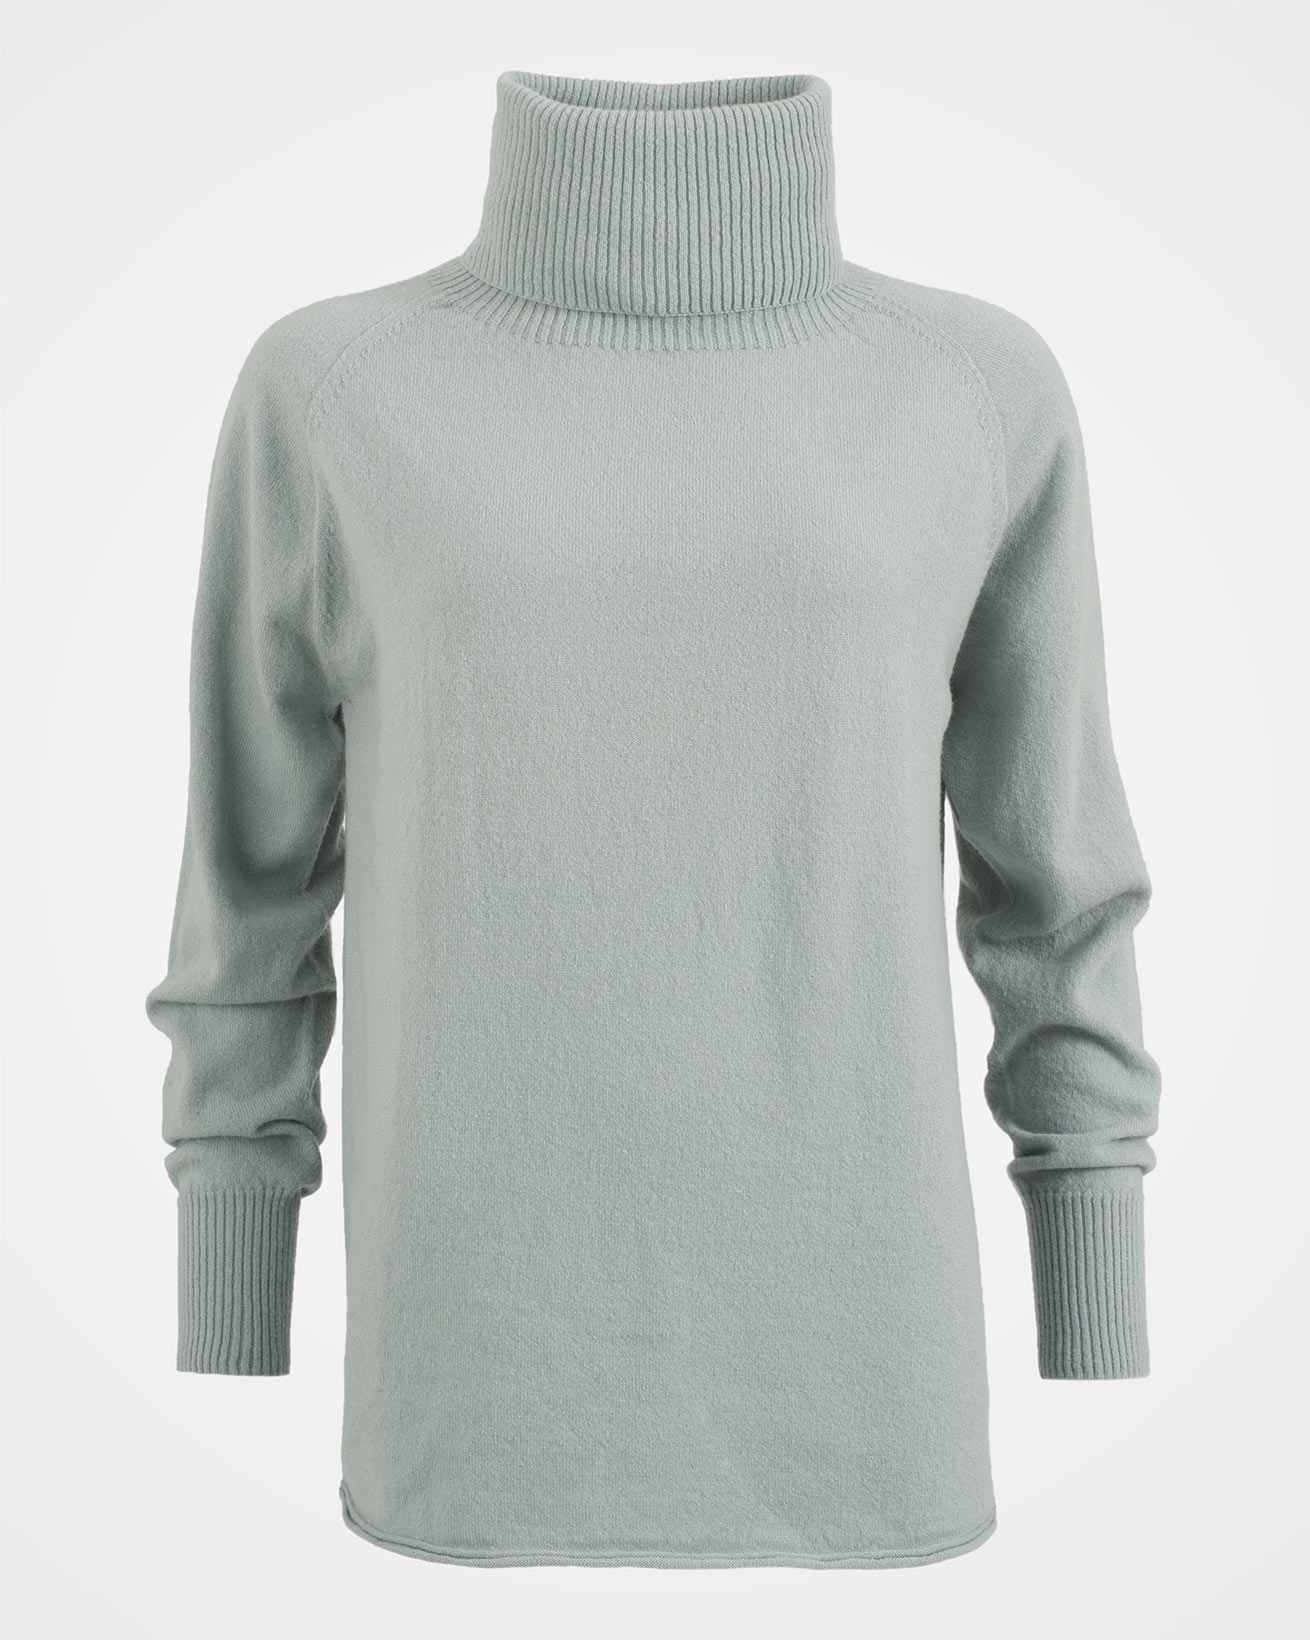 7505_geelong-slouch-roll-neck_mineral_front.jpg